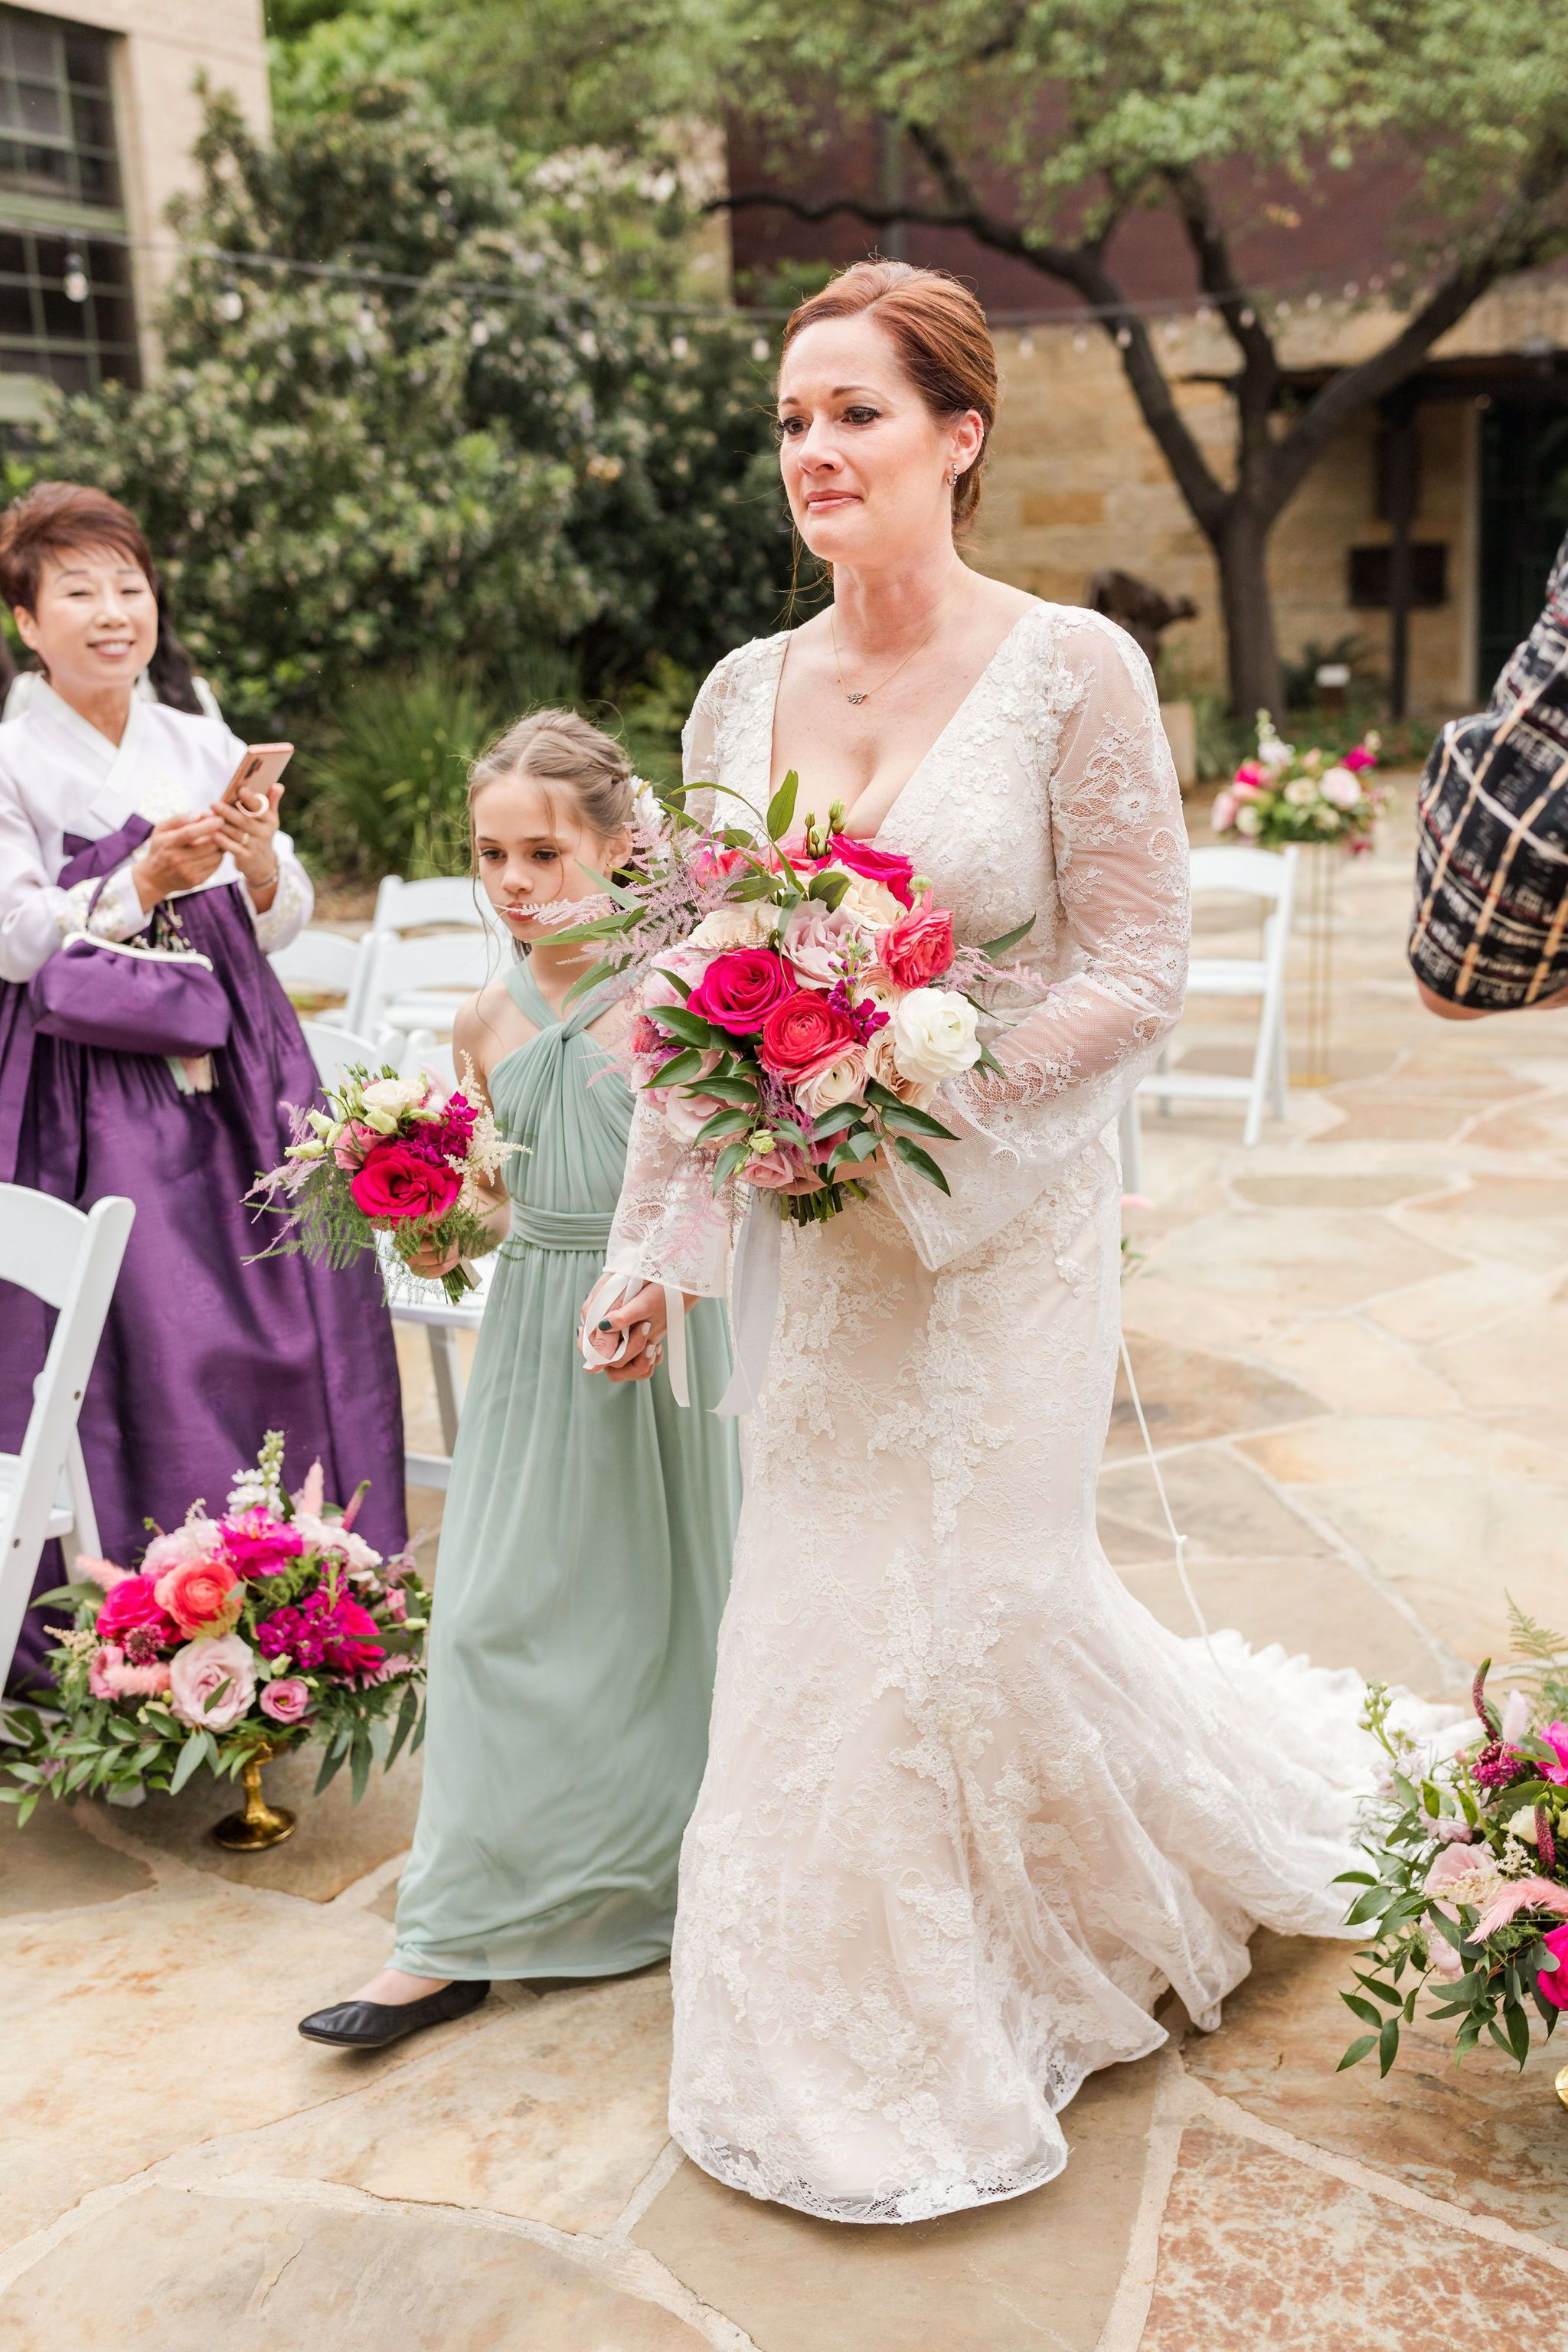 Modern Wedding At The Briscoe Western Art Museum San Antonio Texas In 2020 Wedding Modern San Antonio Weddings Wedding Dresses Lace